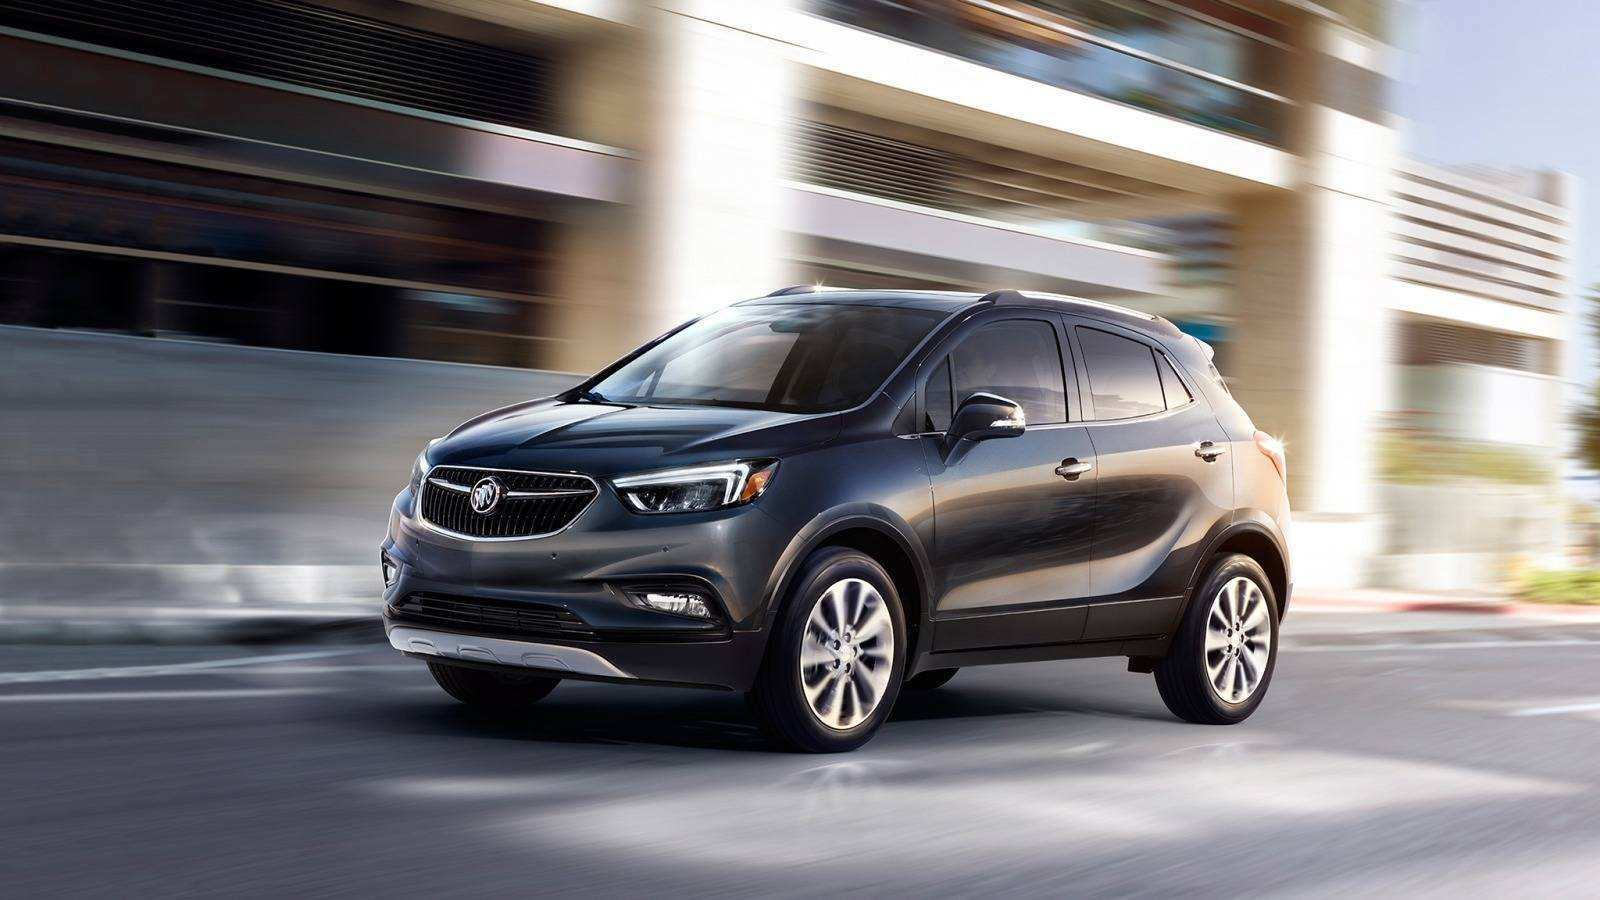 99 Gallery of 2019 Buick Encore Release Date Engine Exterior by 2019 Buick Encore Release Date Engine